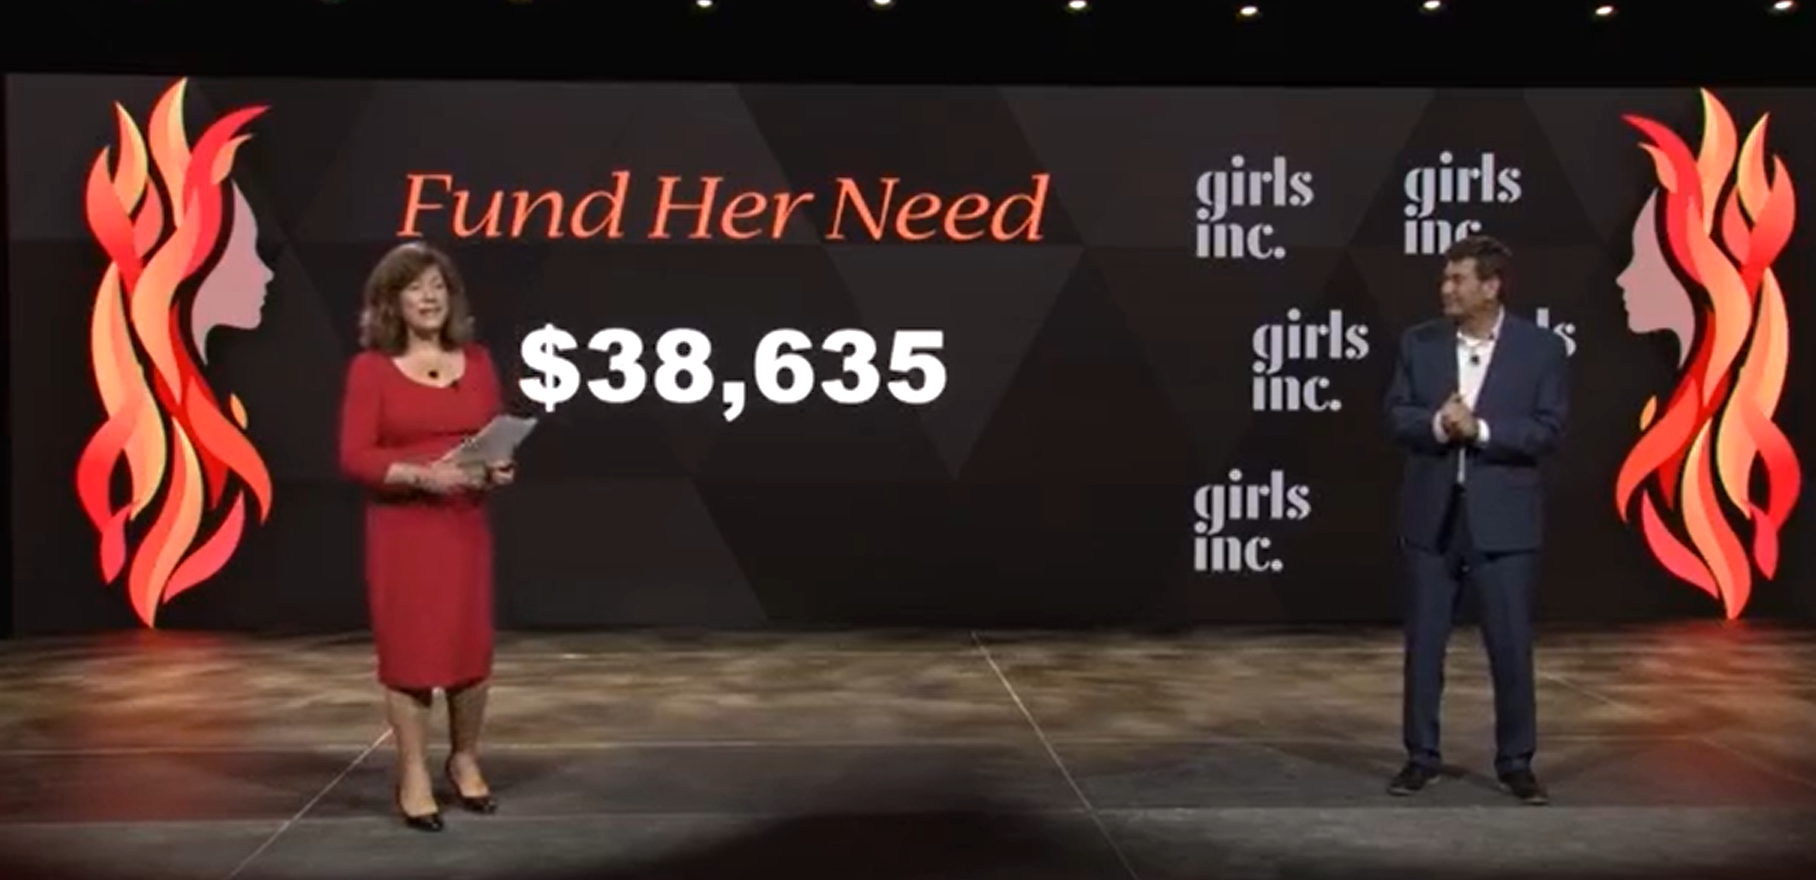 Girls inc fund her need